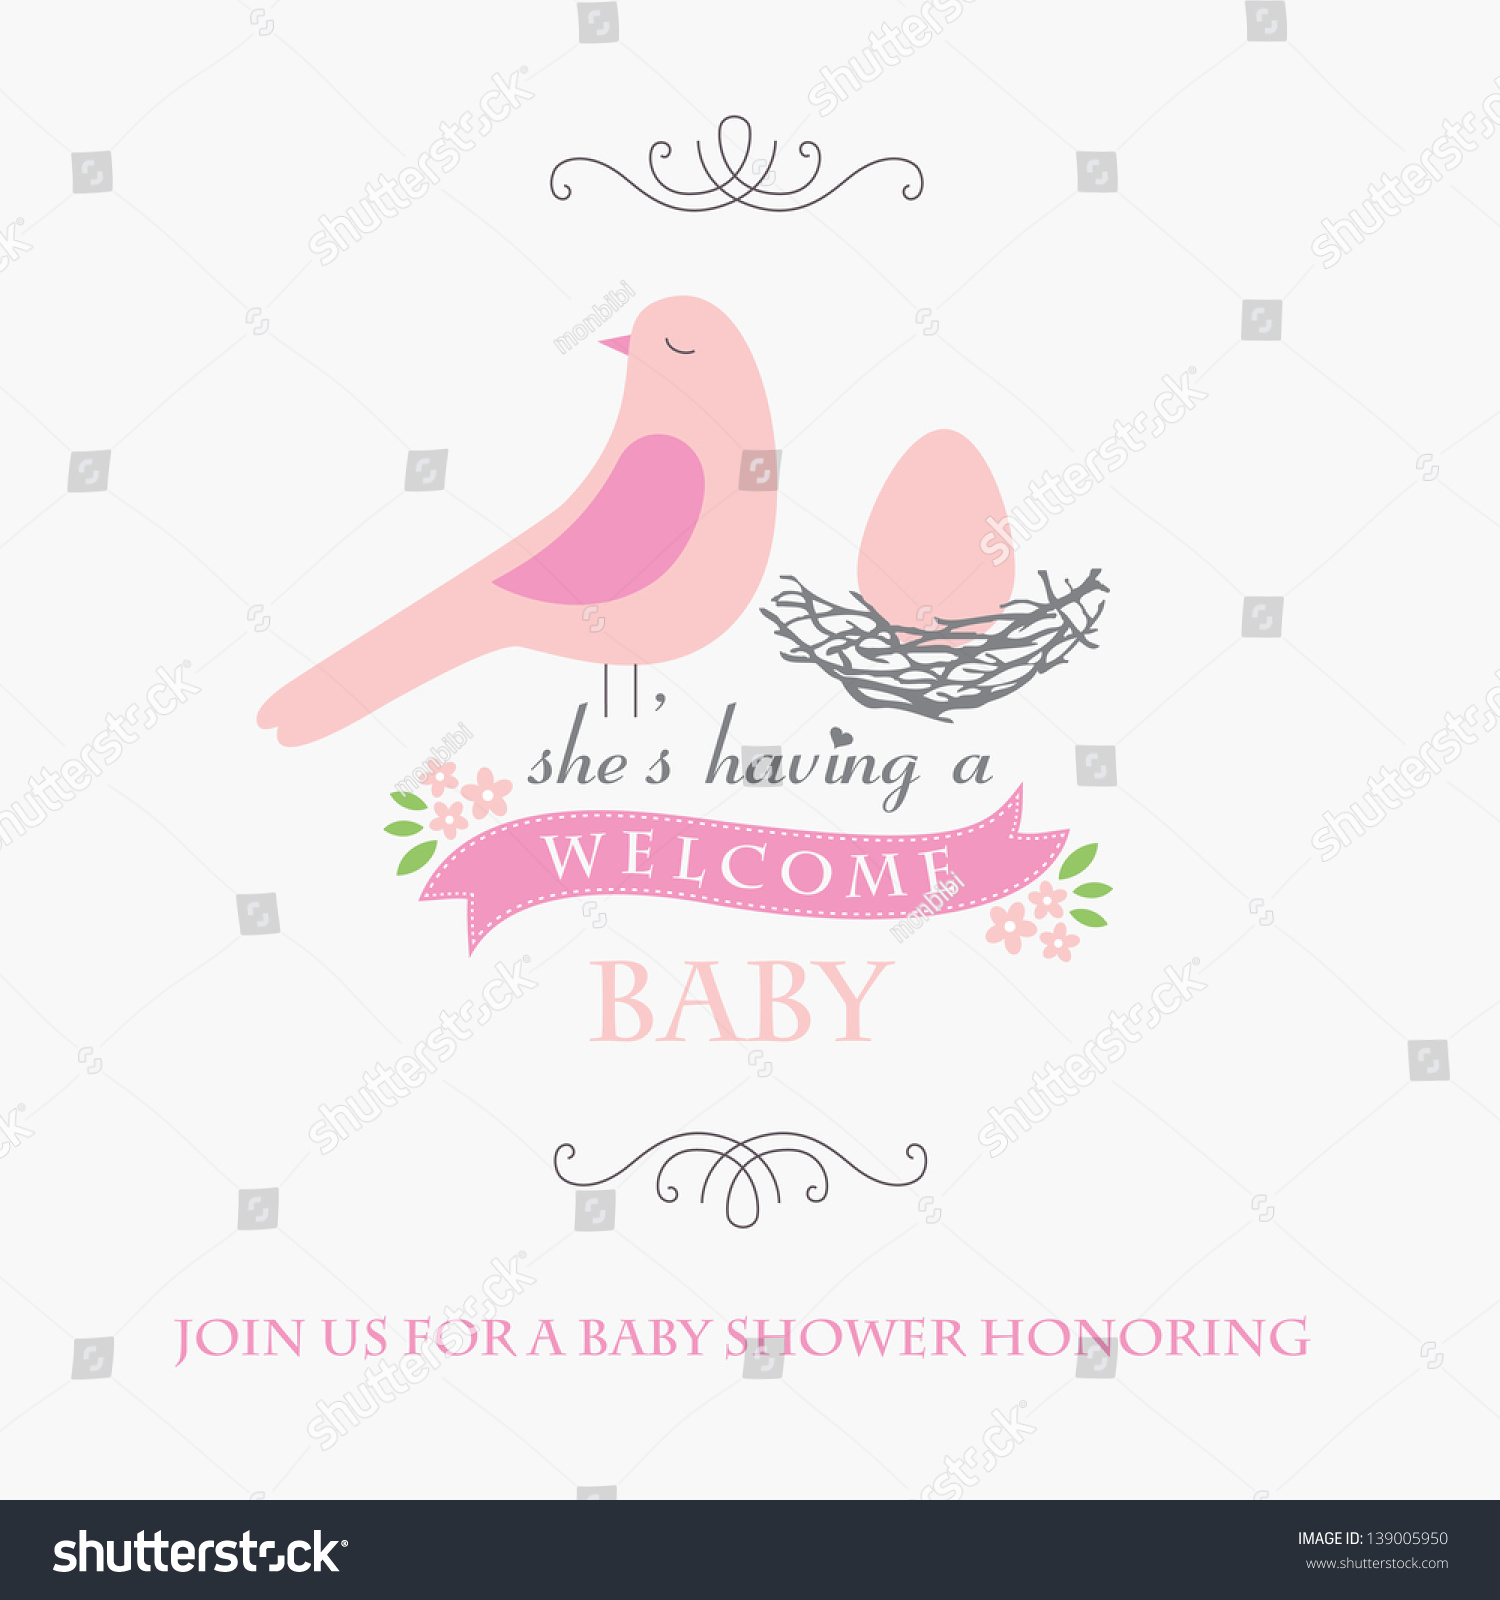 Welcome Baby Card Design Vector Illustration Stock Vector ...